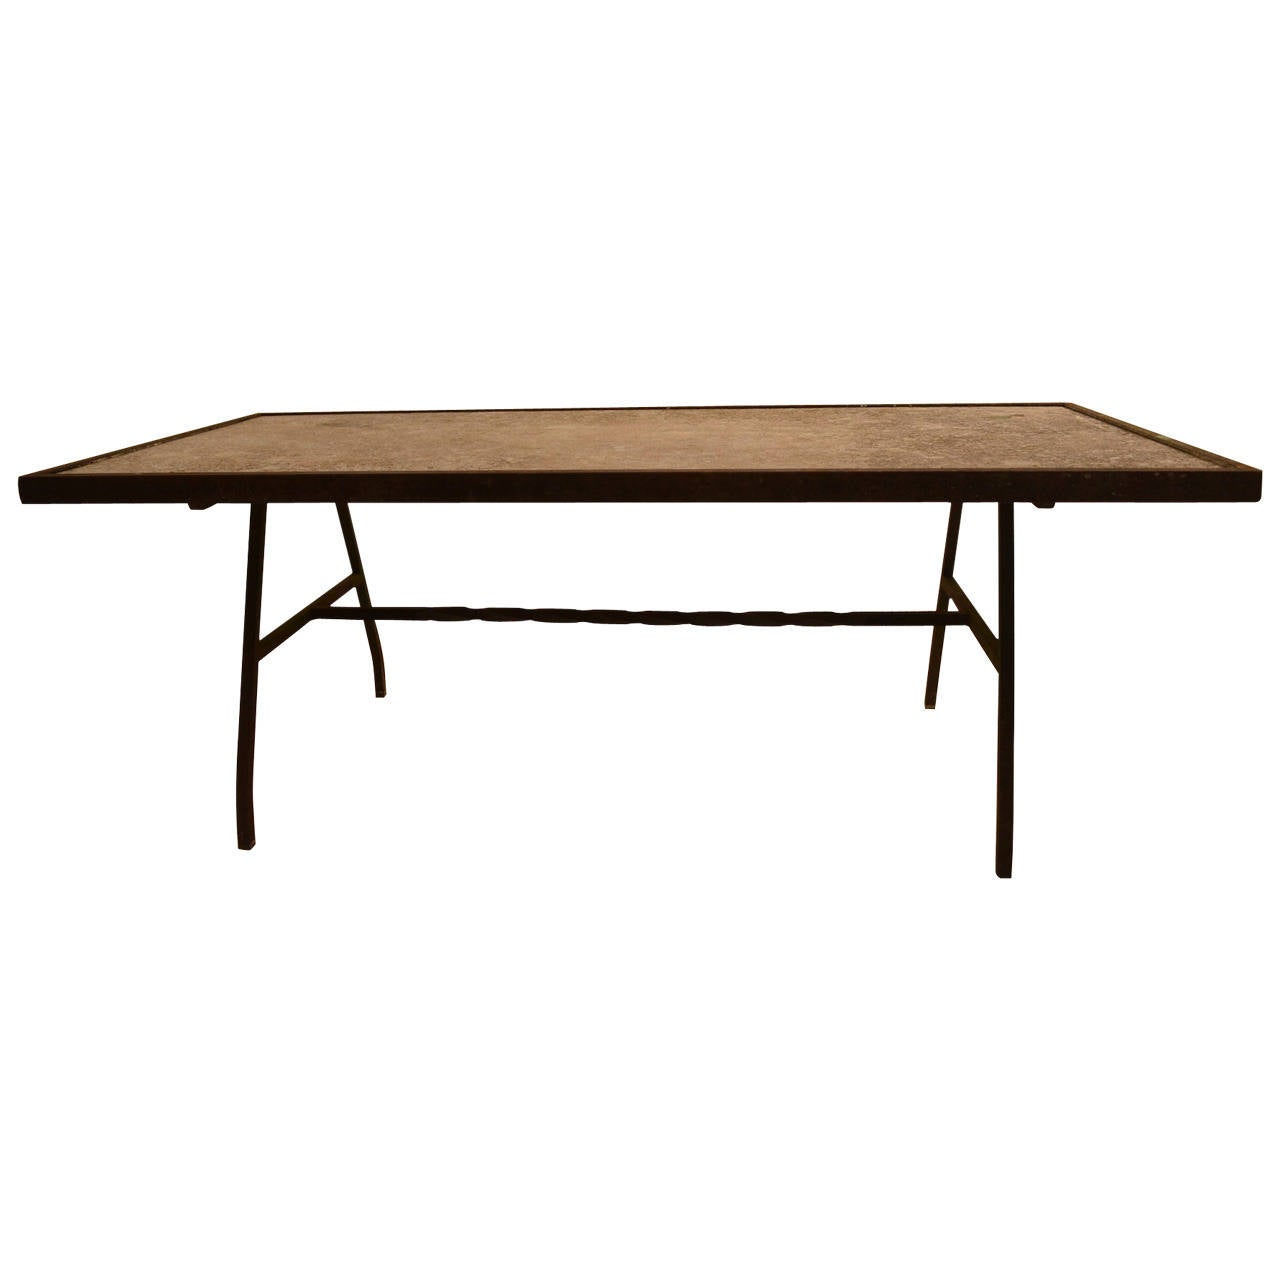 Stone top wrought iron base coffee table at 1stdibs Wrought iron coffee tables